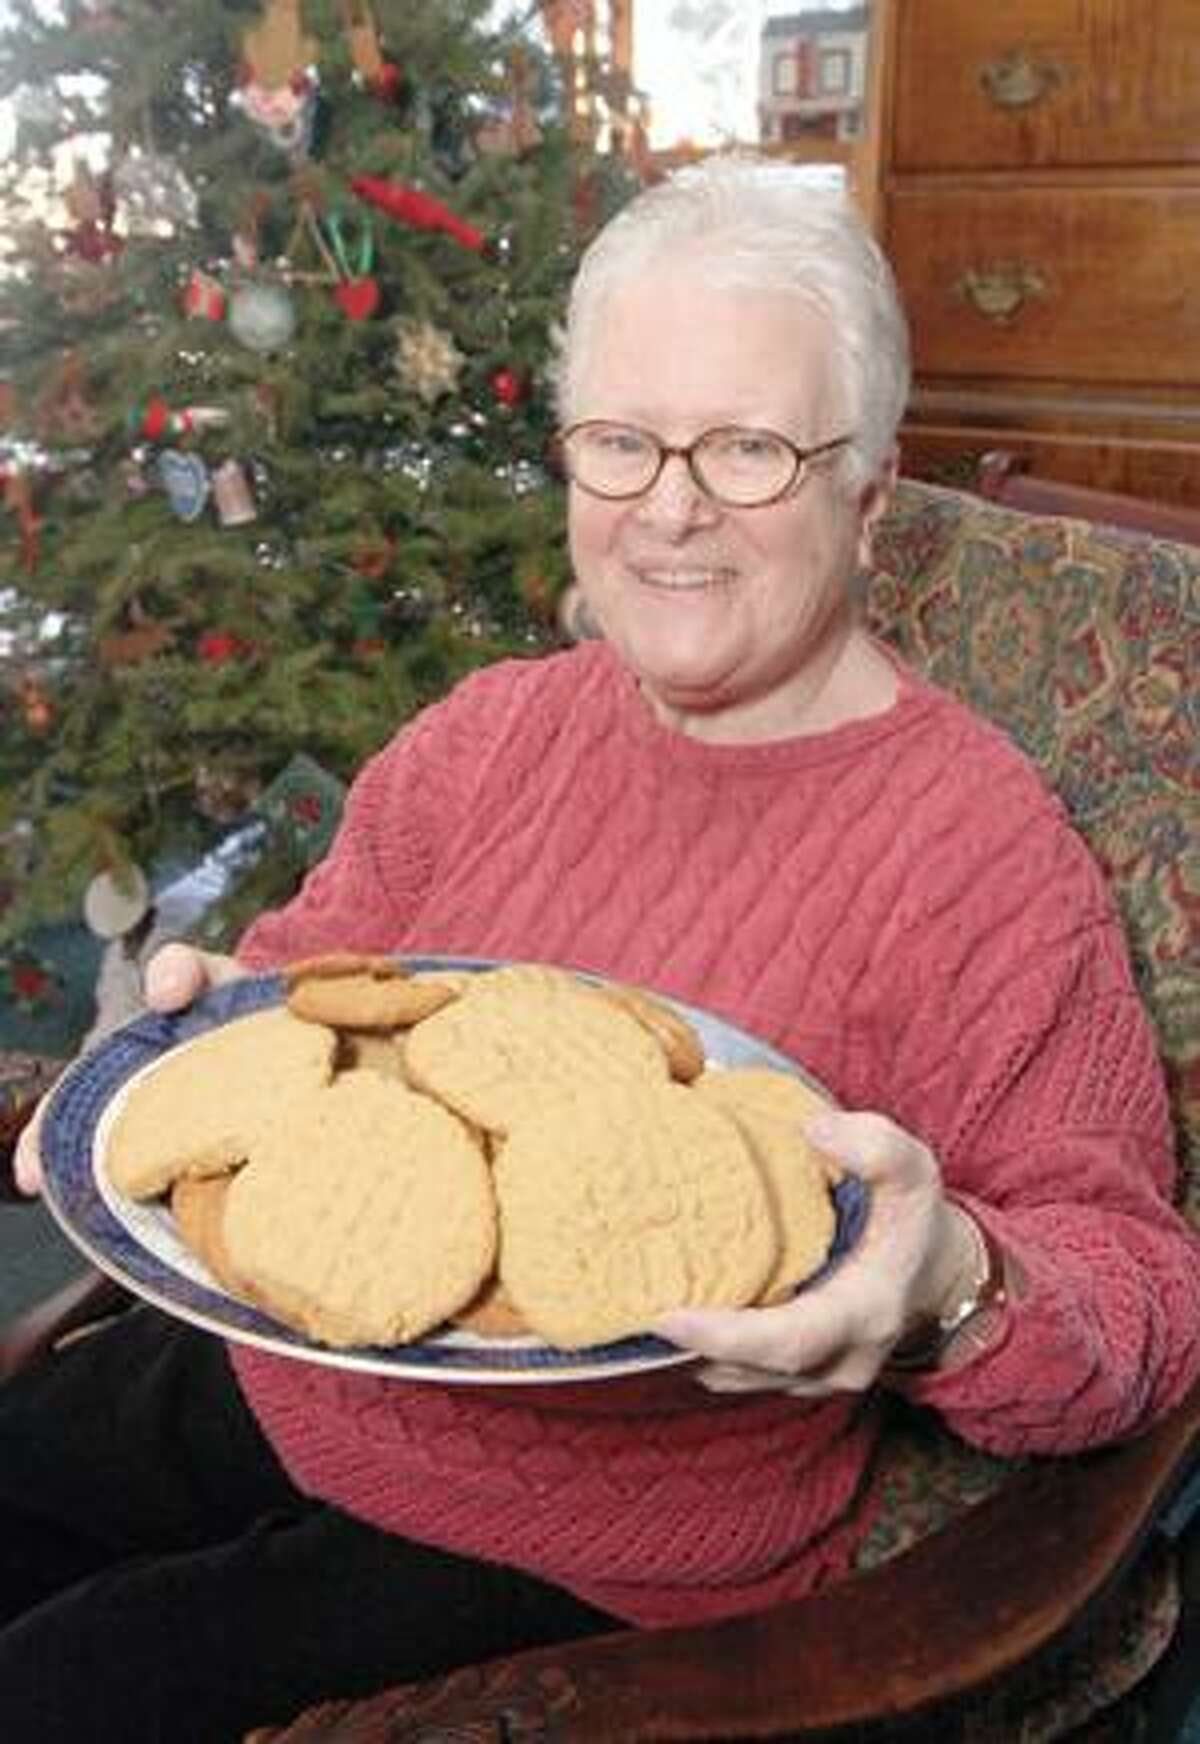 SONJA ZINKE/Register CitizenAnn McGurk of Litchfield with a plate of her homemade cookies. Purchase a glossy print of this photo and more at www.registercitizen.com